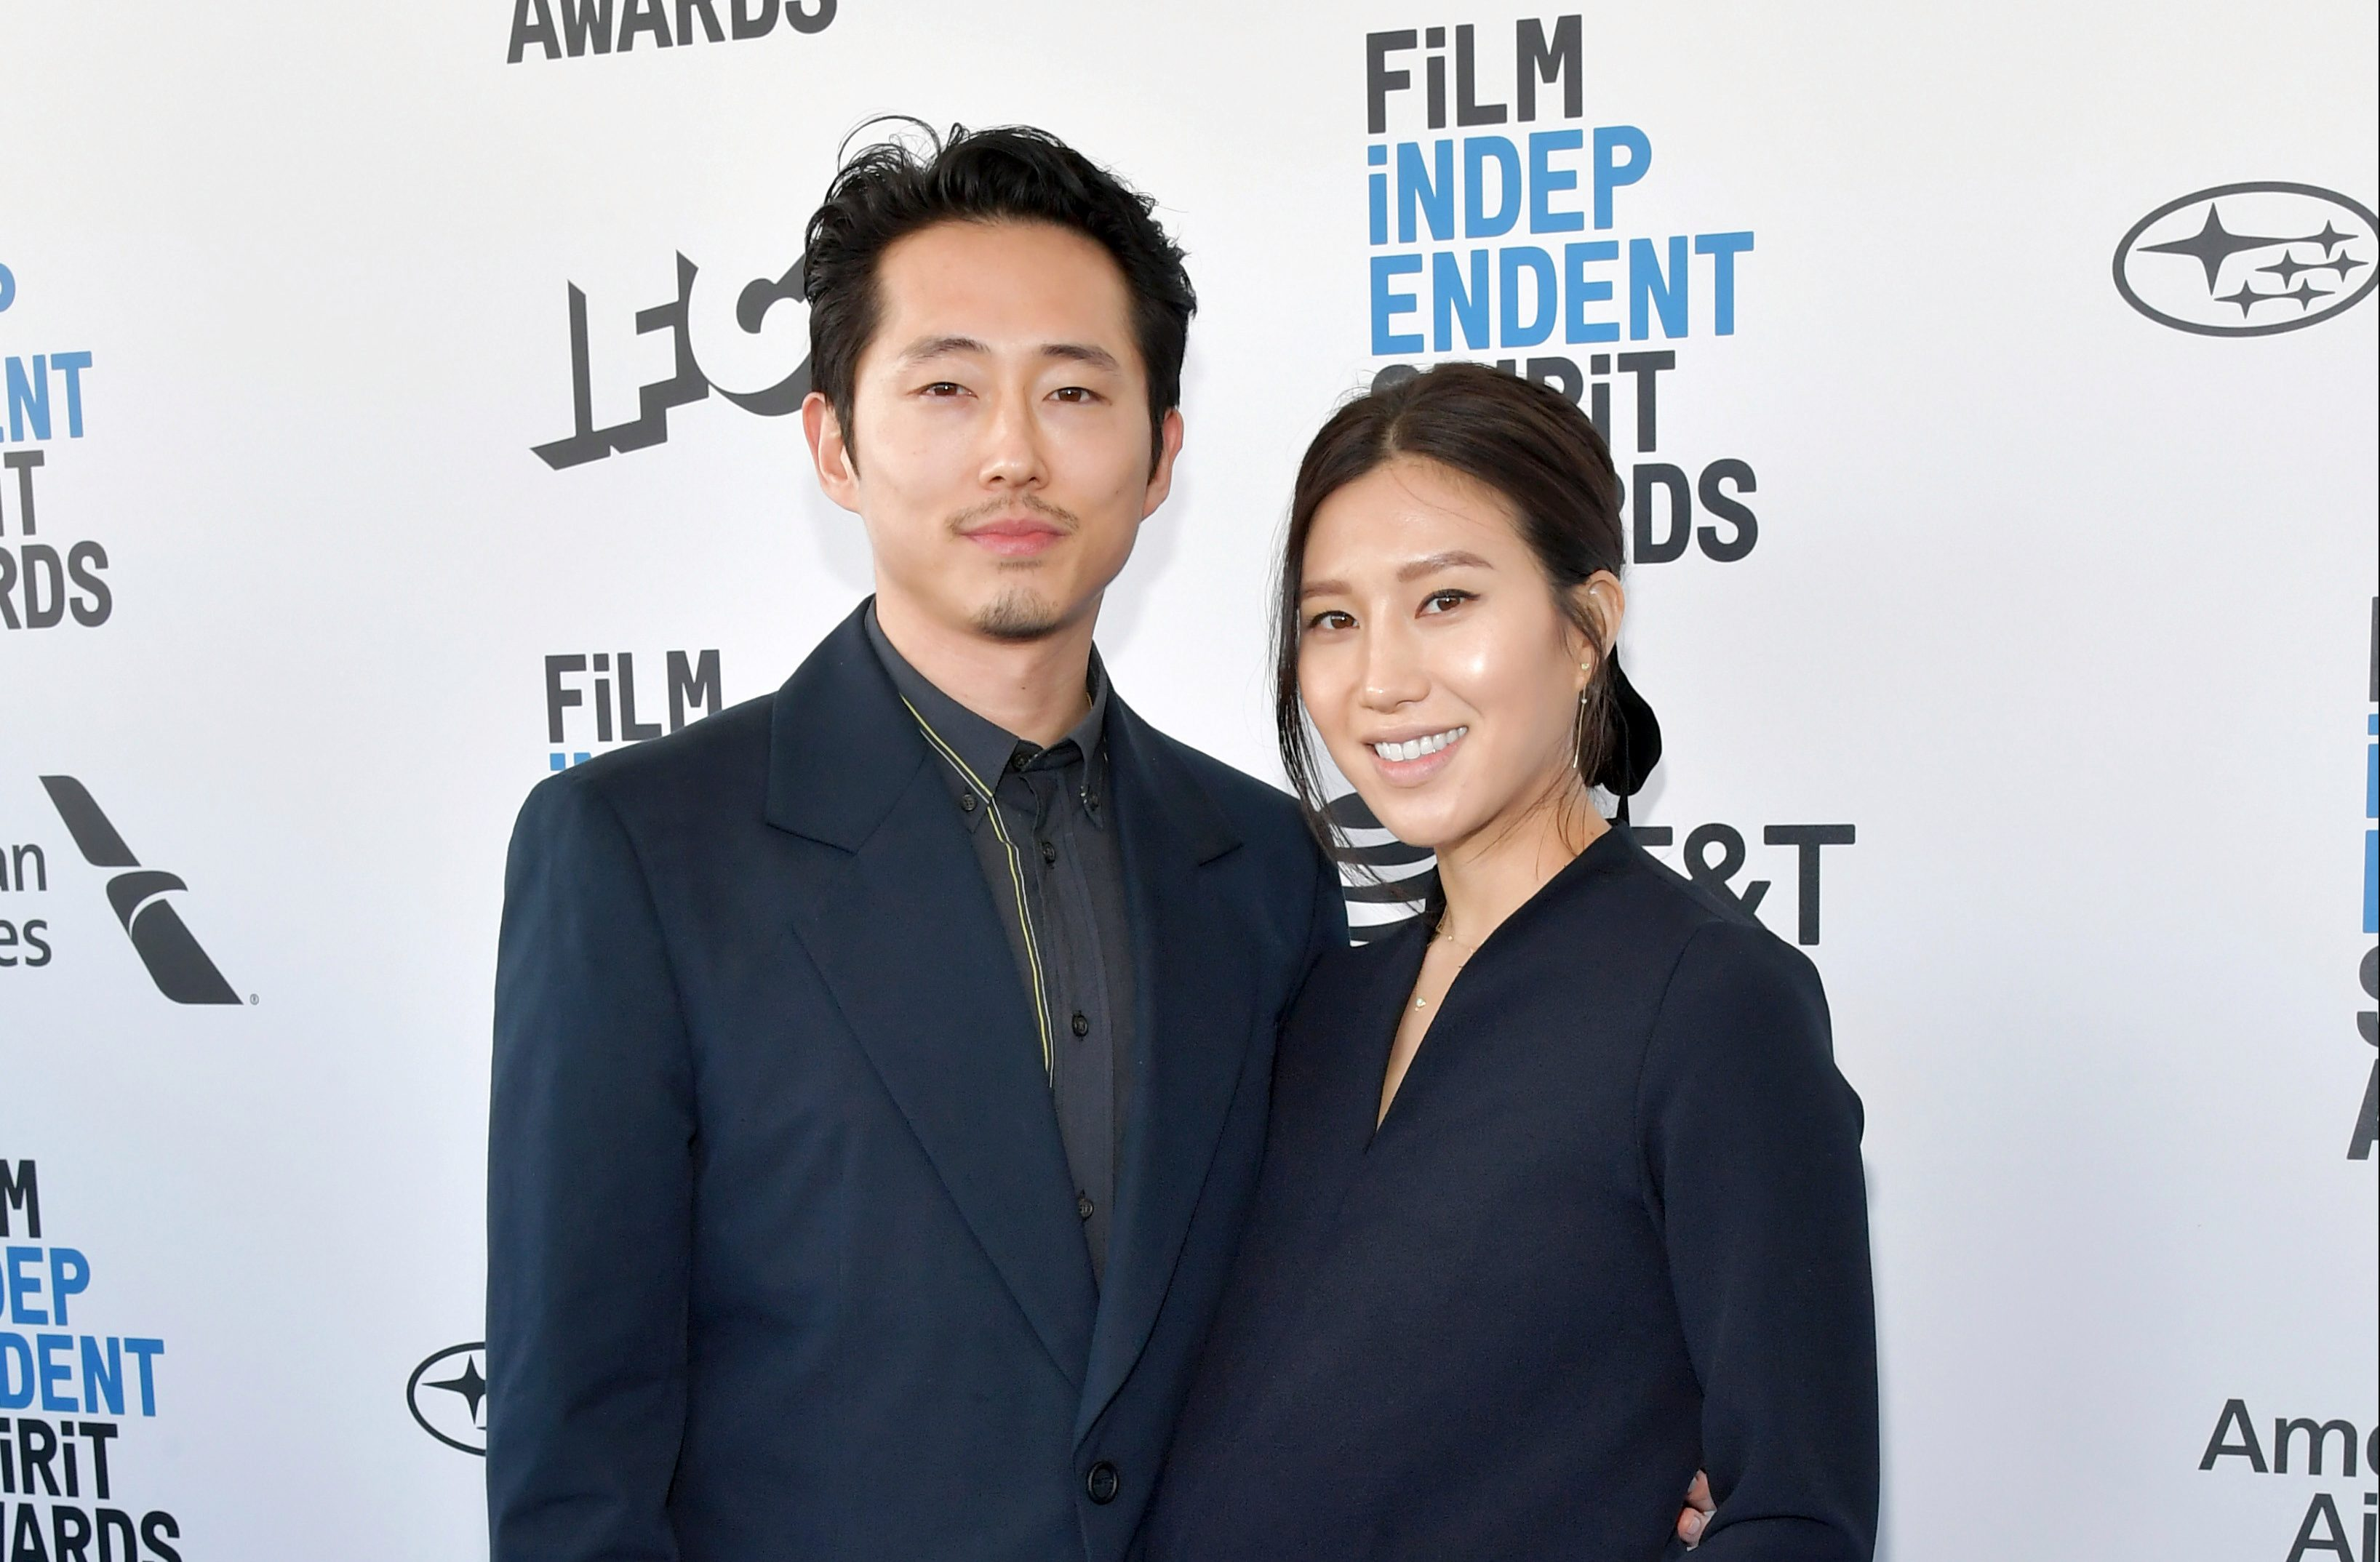 The Walking Dead's Steven Yeun welcomes baby number 2 with Joana Pak and our hearts